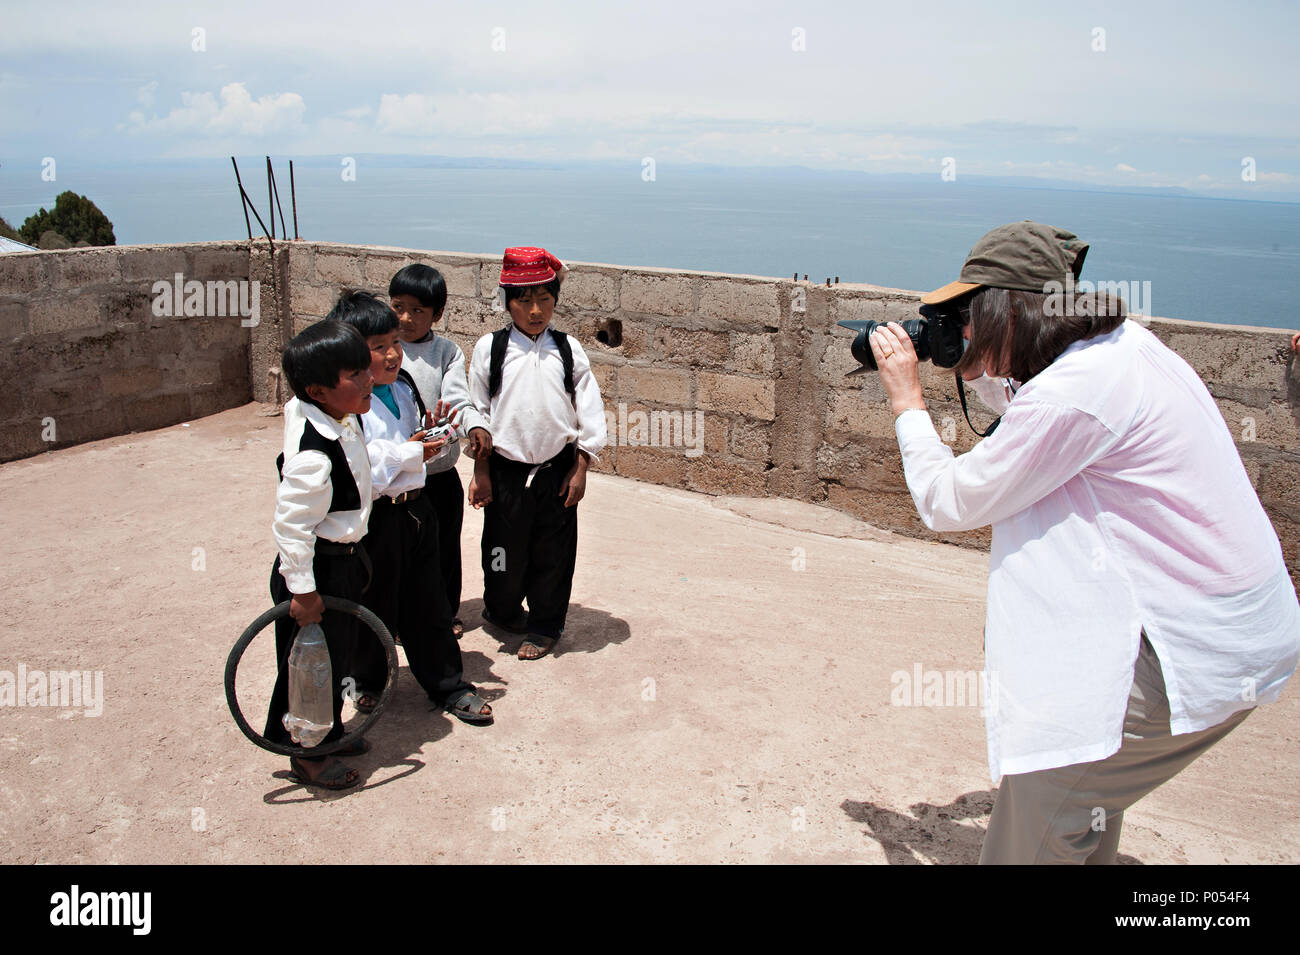 Young boys gather round to pose for a photograph in exchange for candy and sweets in the village at Taquile island, Lake Titicaca. Peru - Stock Image